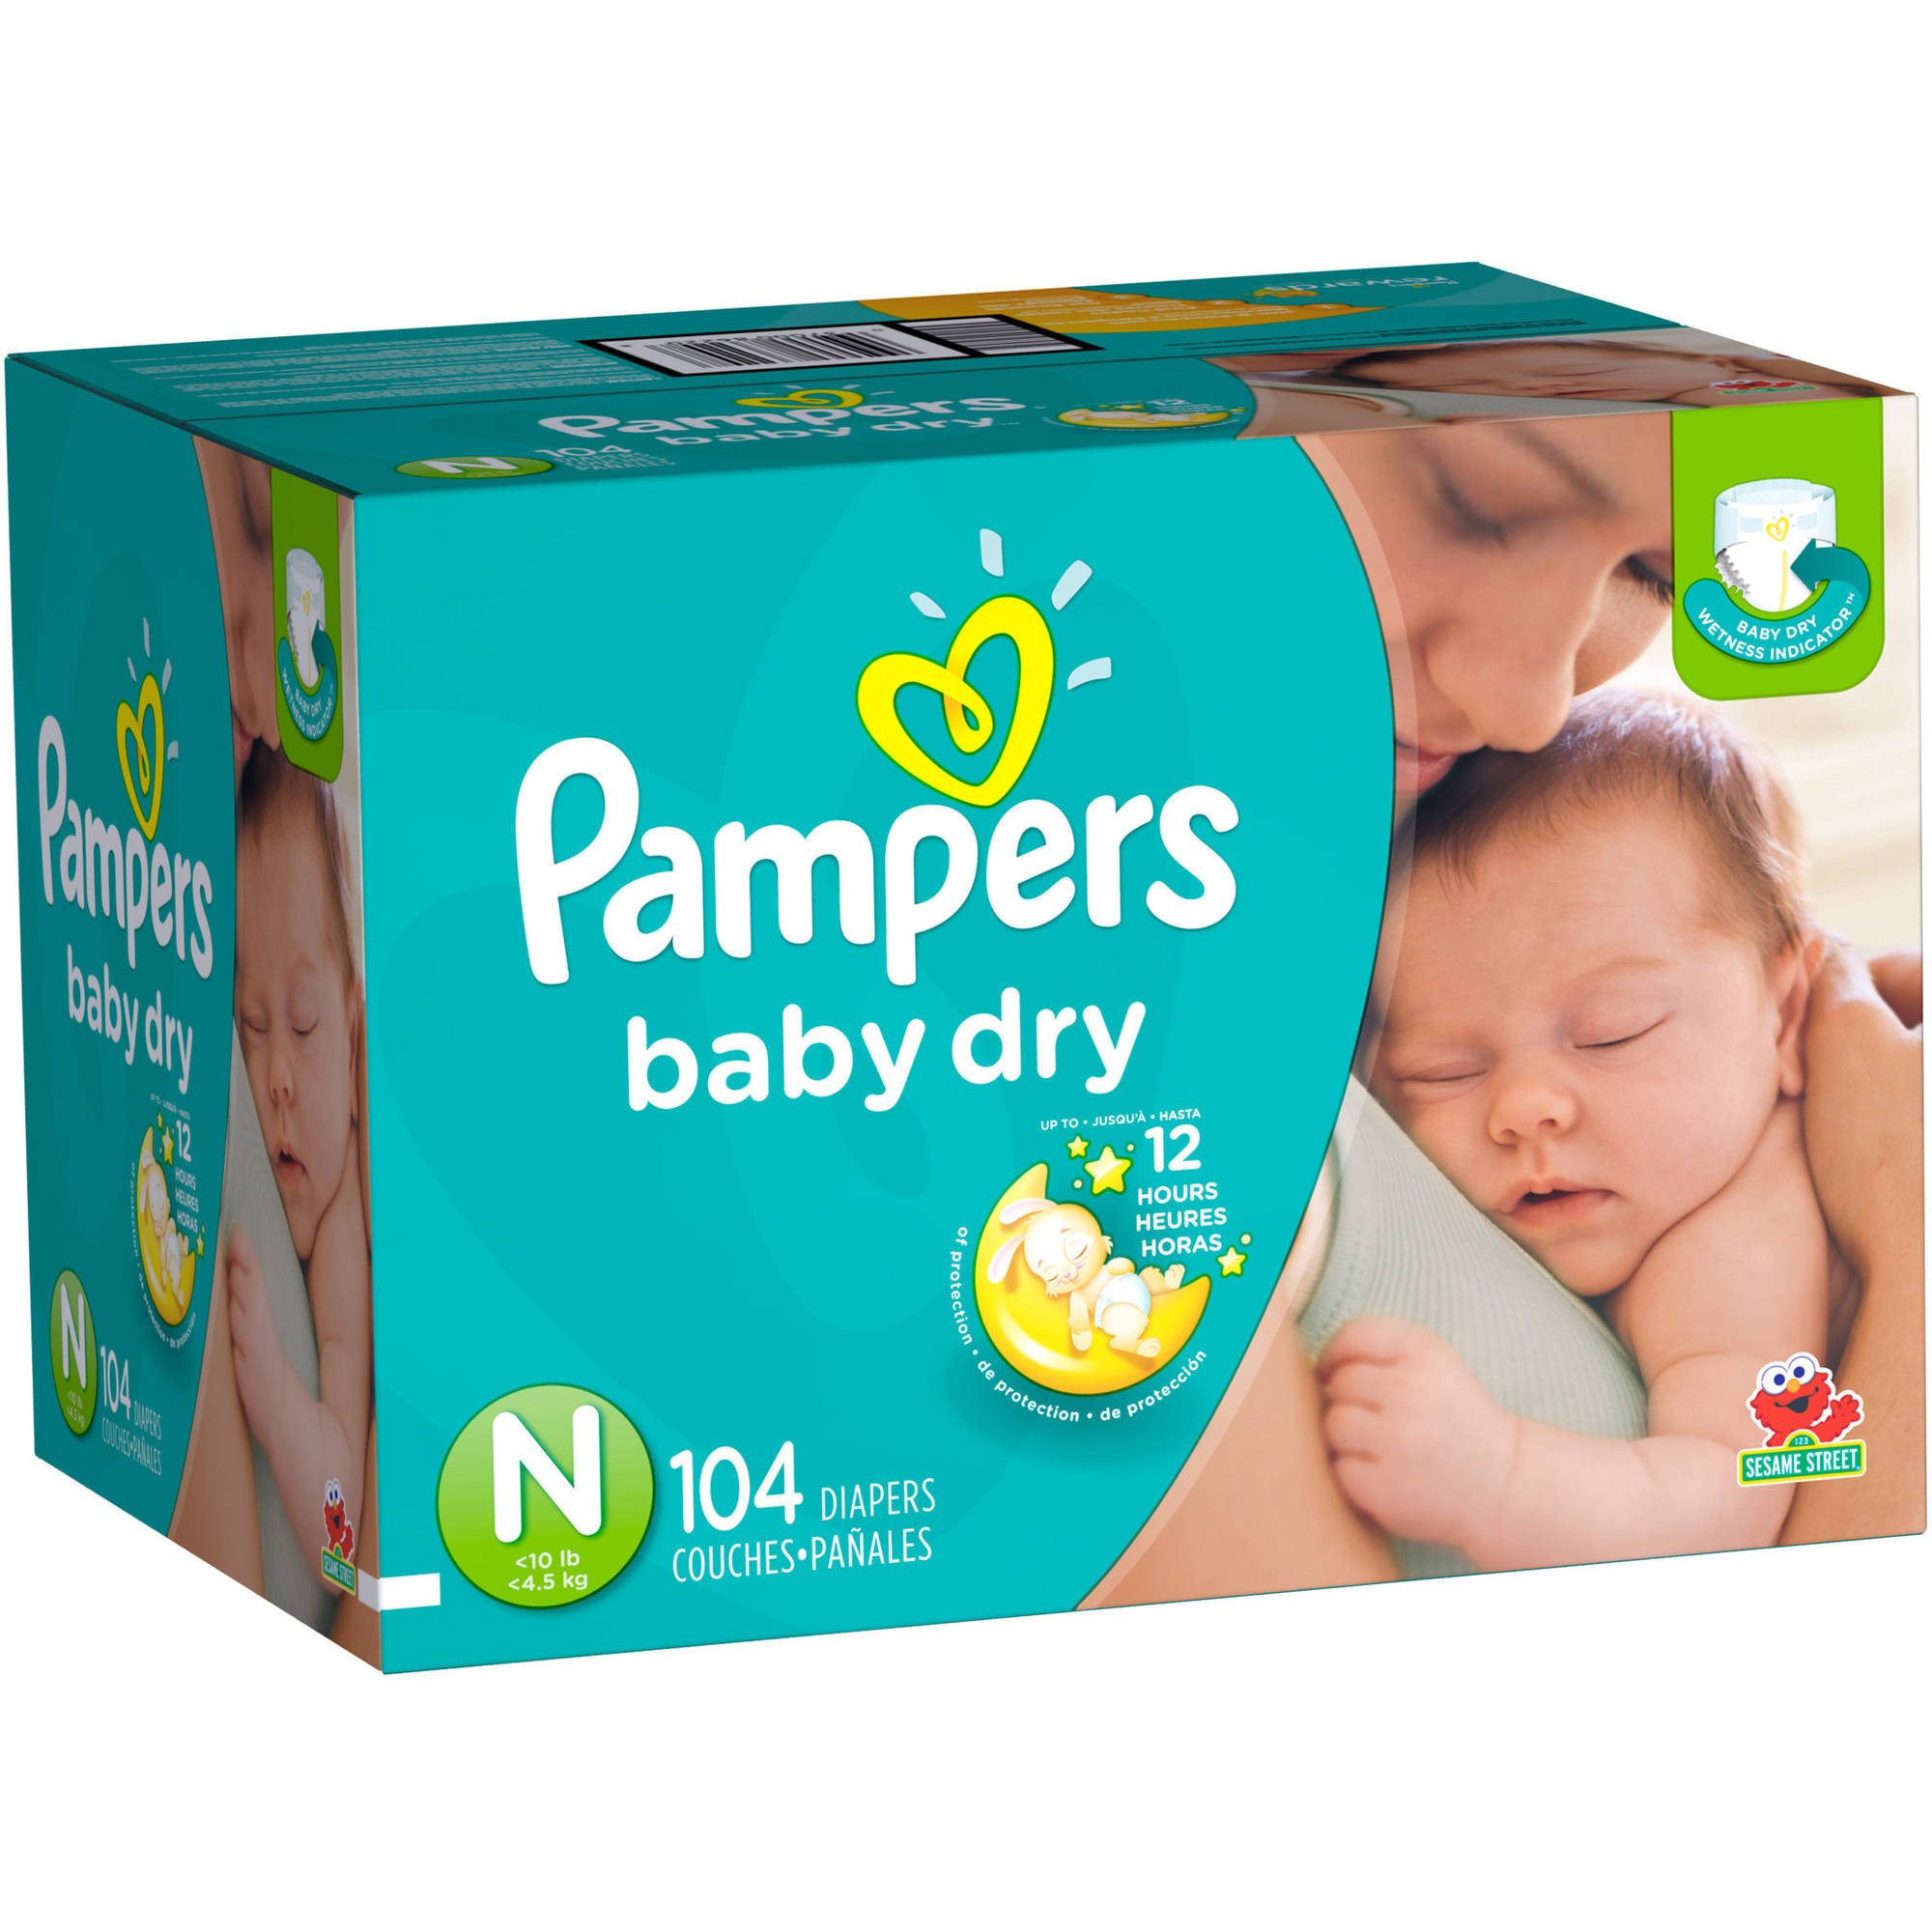 Pampers Baby Dry Diapers, Size Newborn, 104 Diapers (Super Pack)